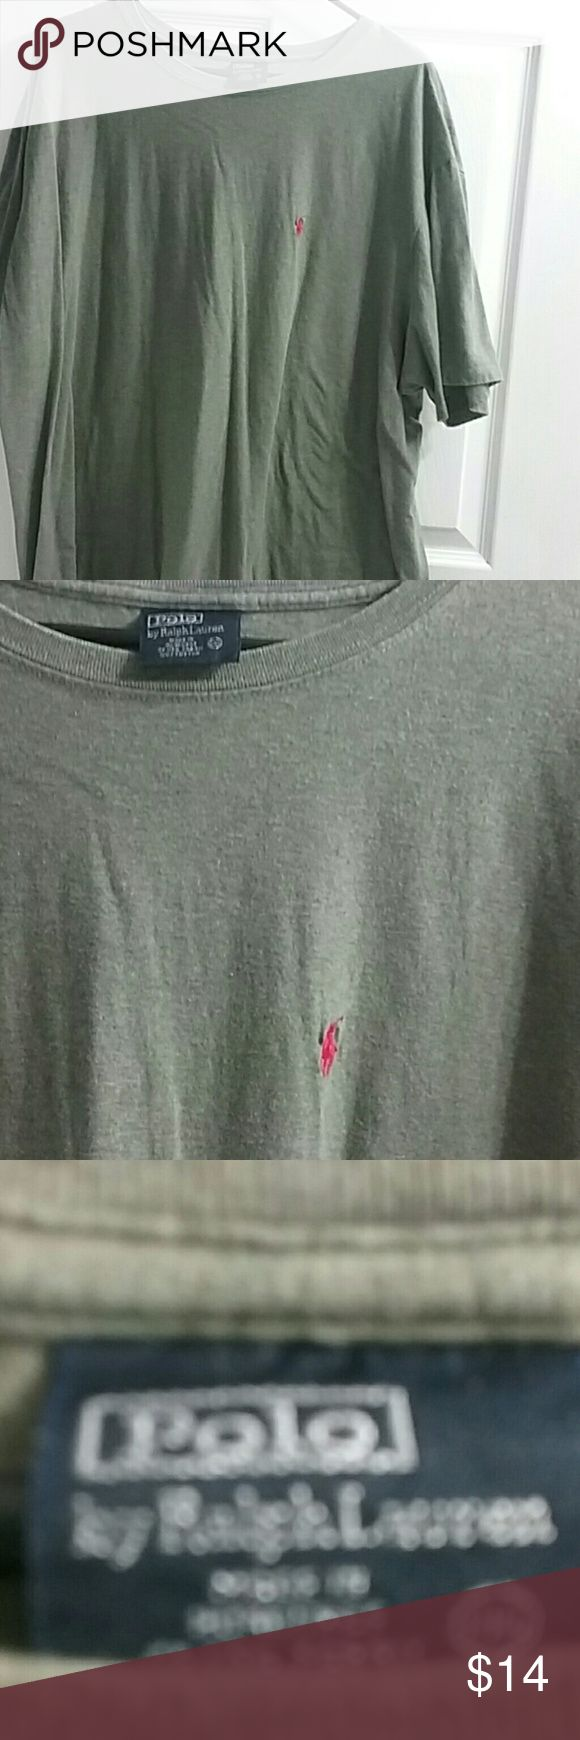 "Men's  Polo tee shirt Big  grayish green tee. Great condition.no stains..no issues..29"" long Polo by Ralph Lauren Shirts Tees - Short Sleeve"